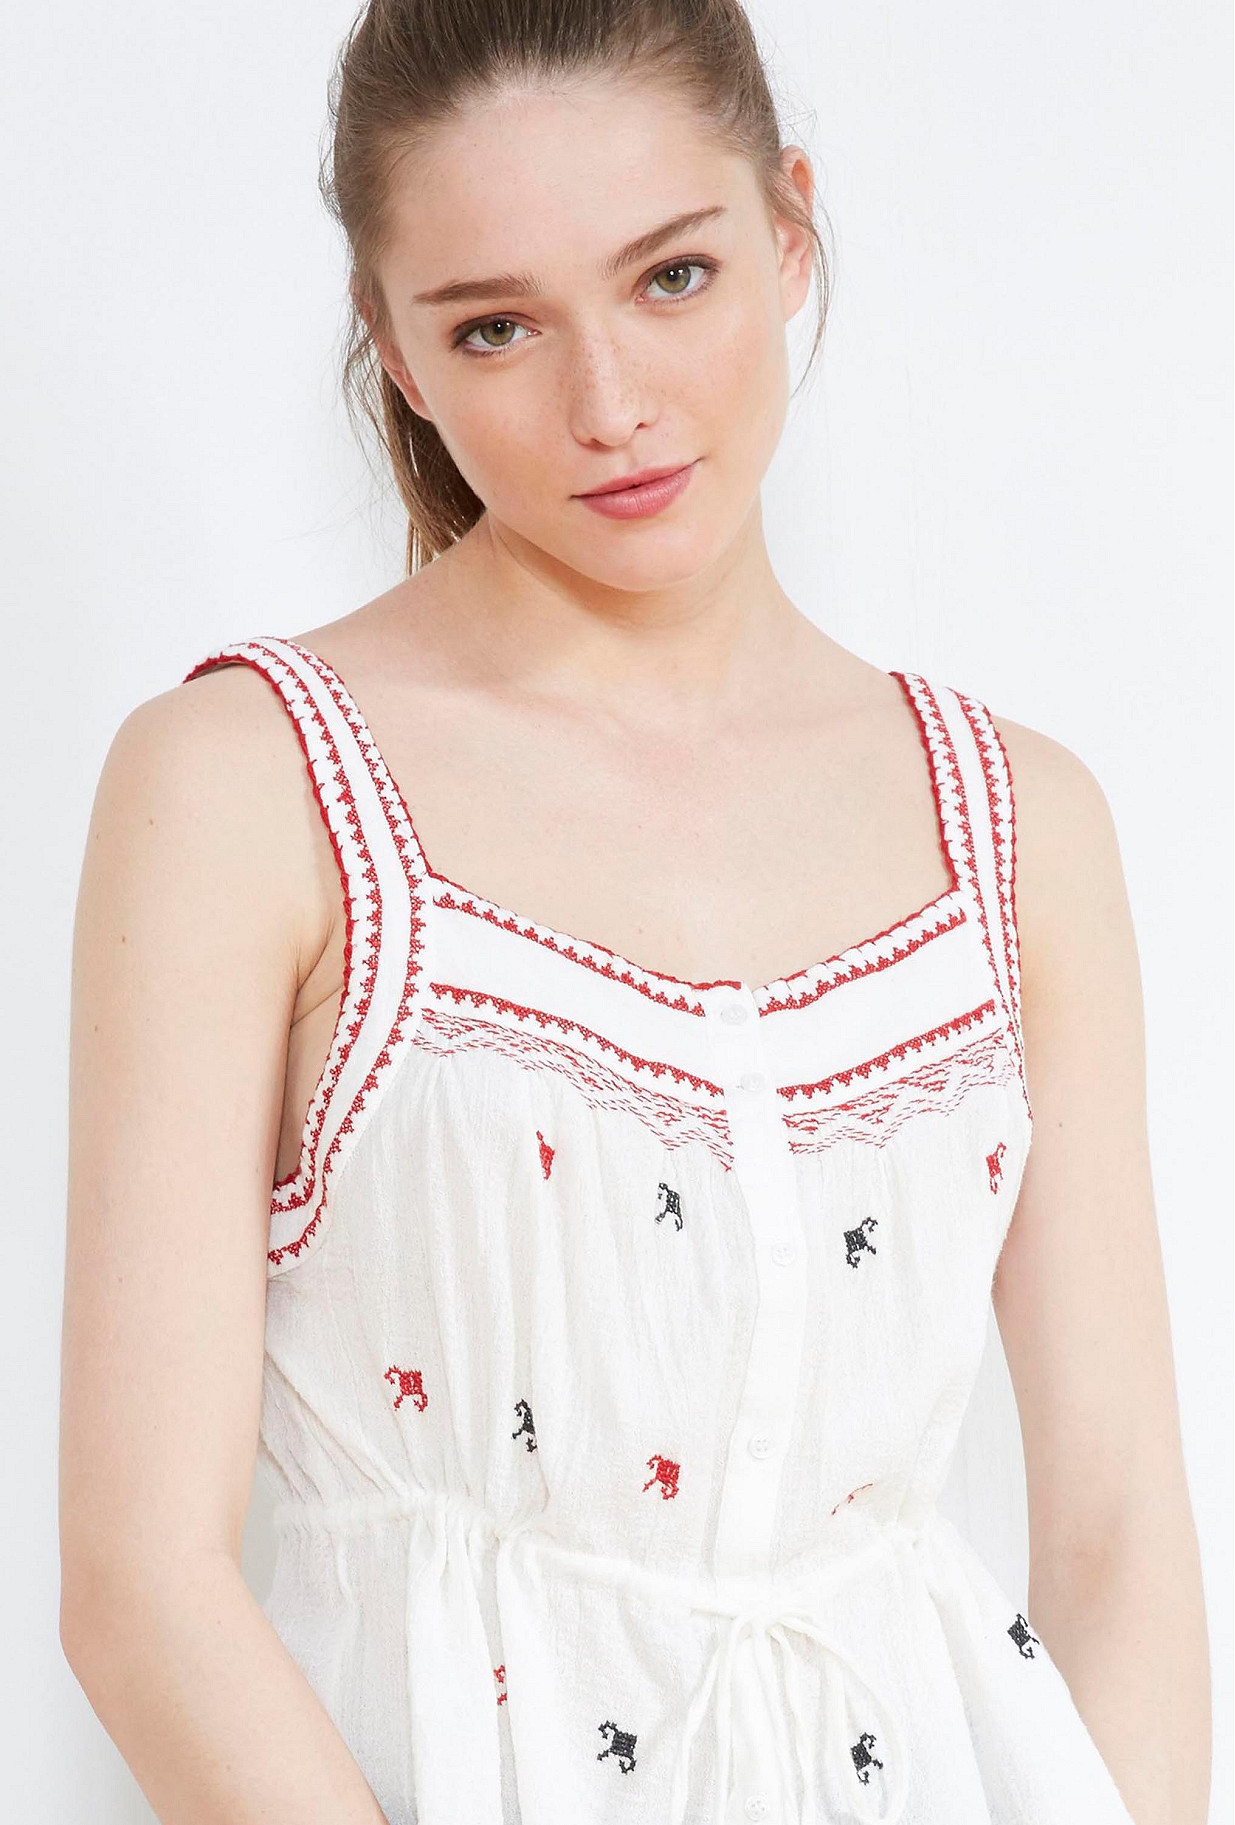 clothes store TOP  Fairy french designer fashion Paris